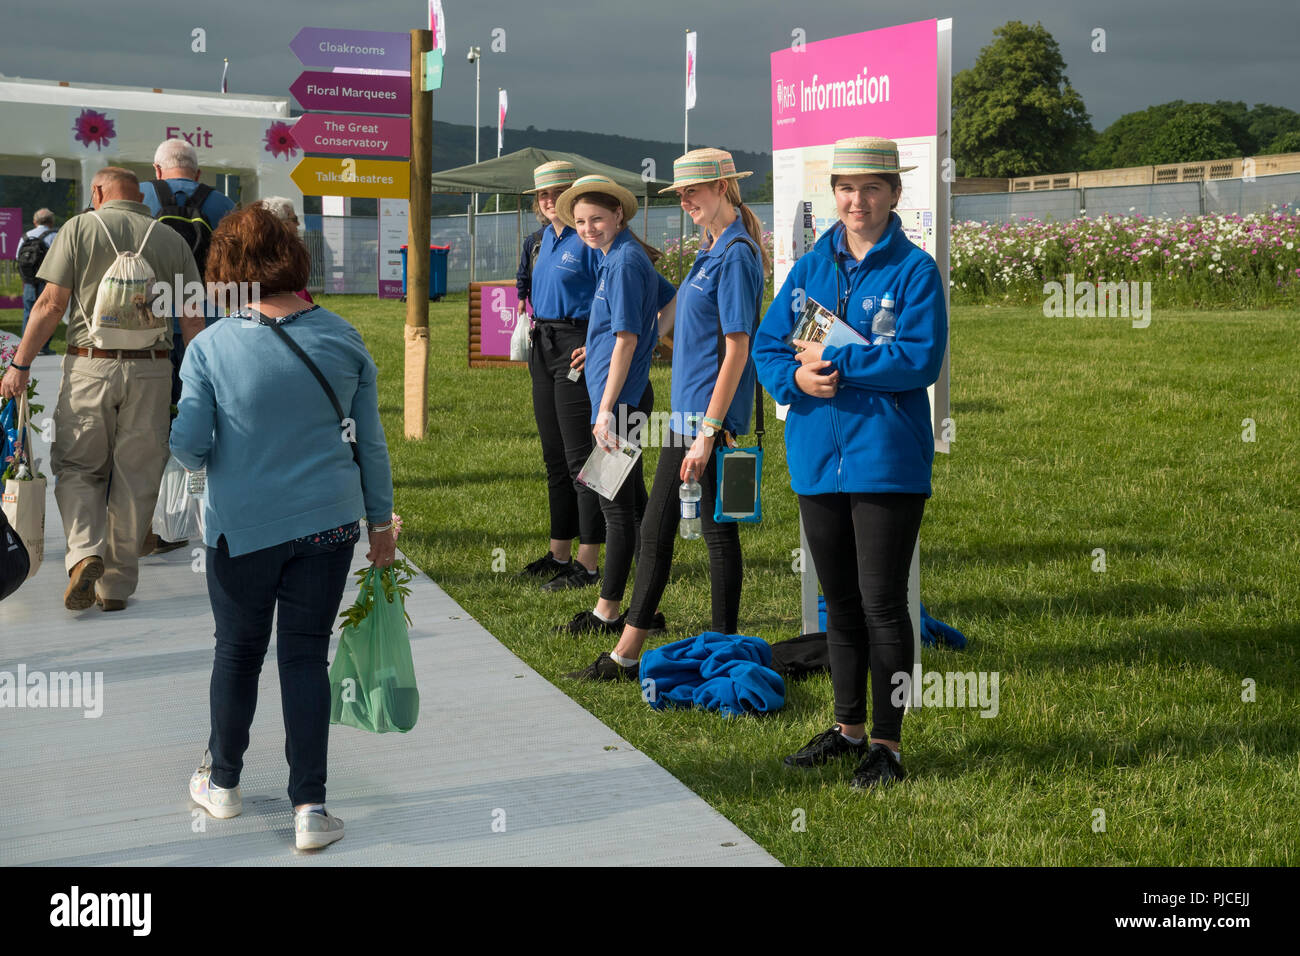 4 young female guides or welcomers stand by information board & smile warmly as visitors walk by - RHS Chatsworth Flower Show, Derbyshire, England, UK - Stock Image